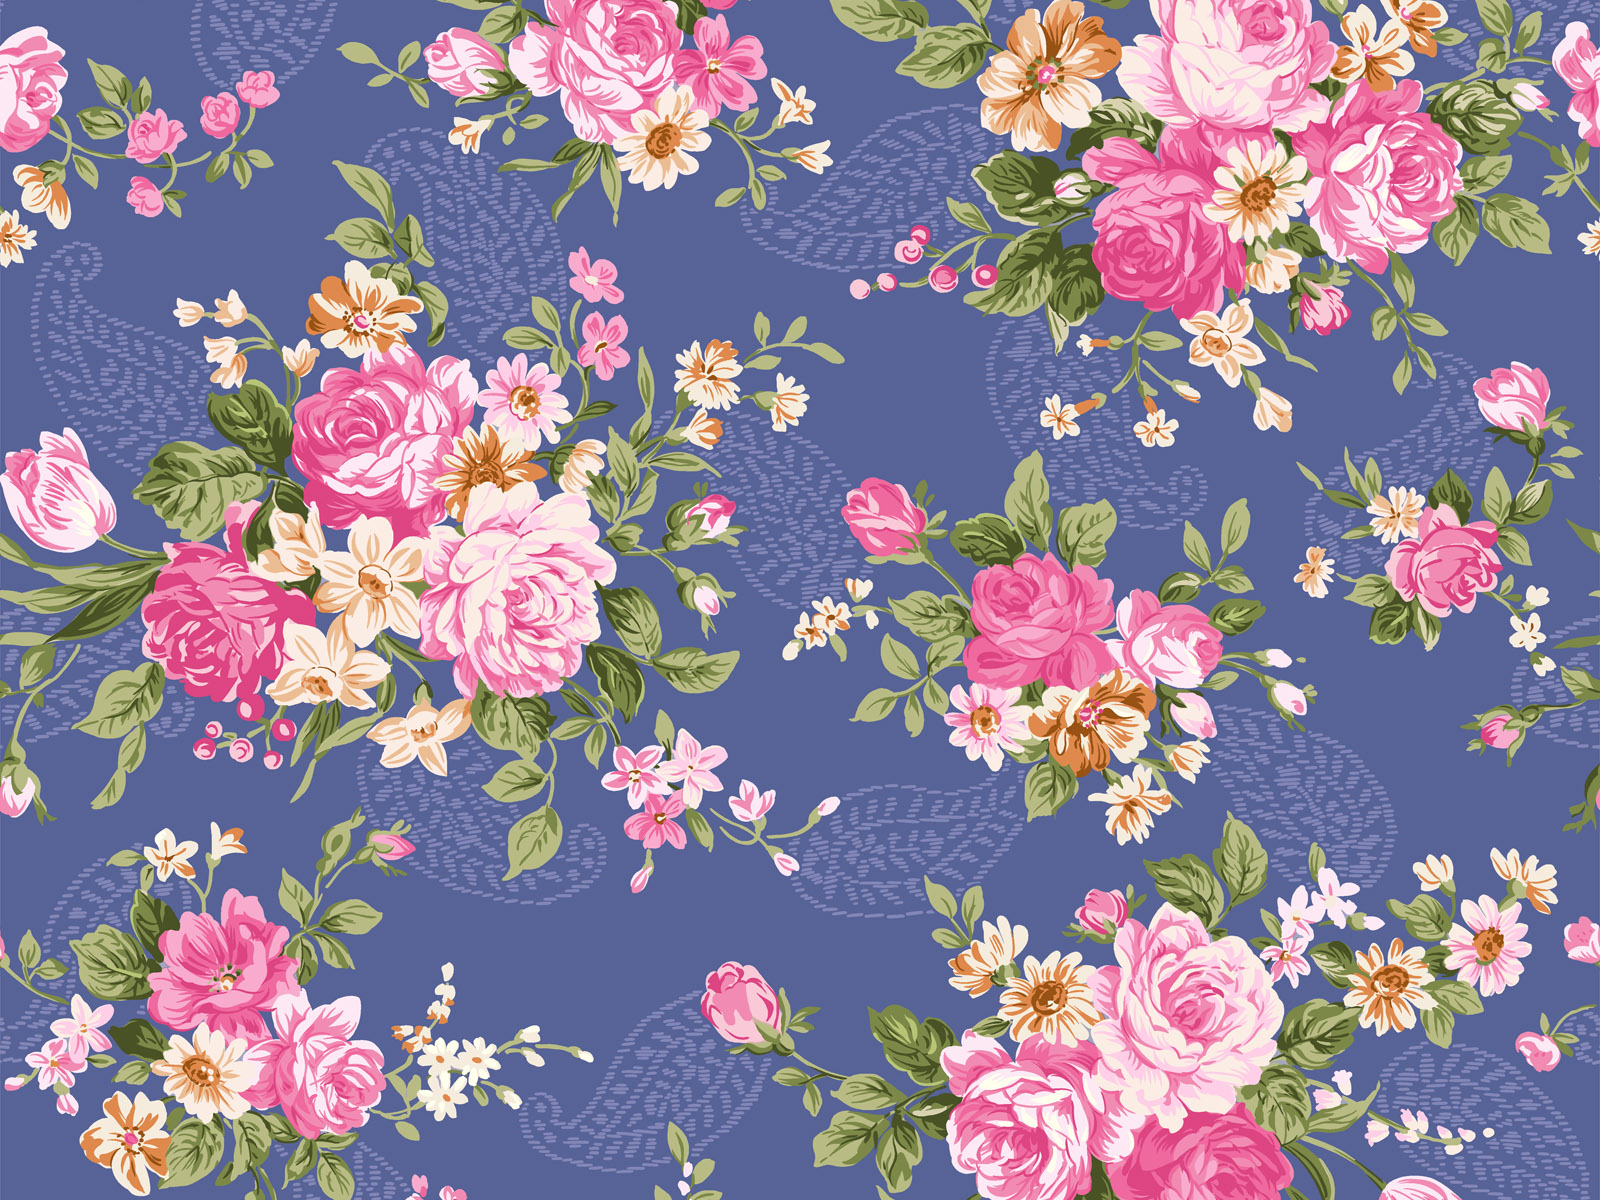 Background wallpaper pattern pattern 204